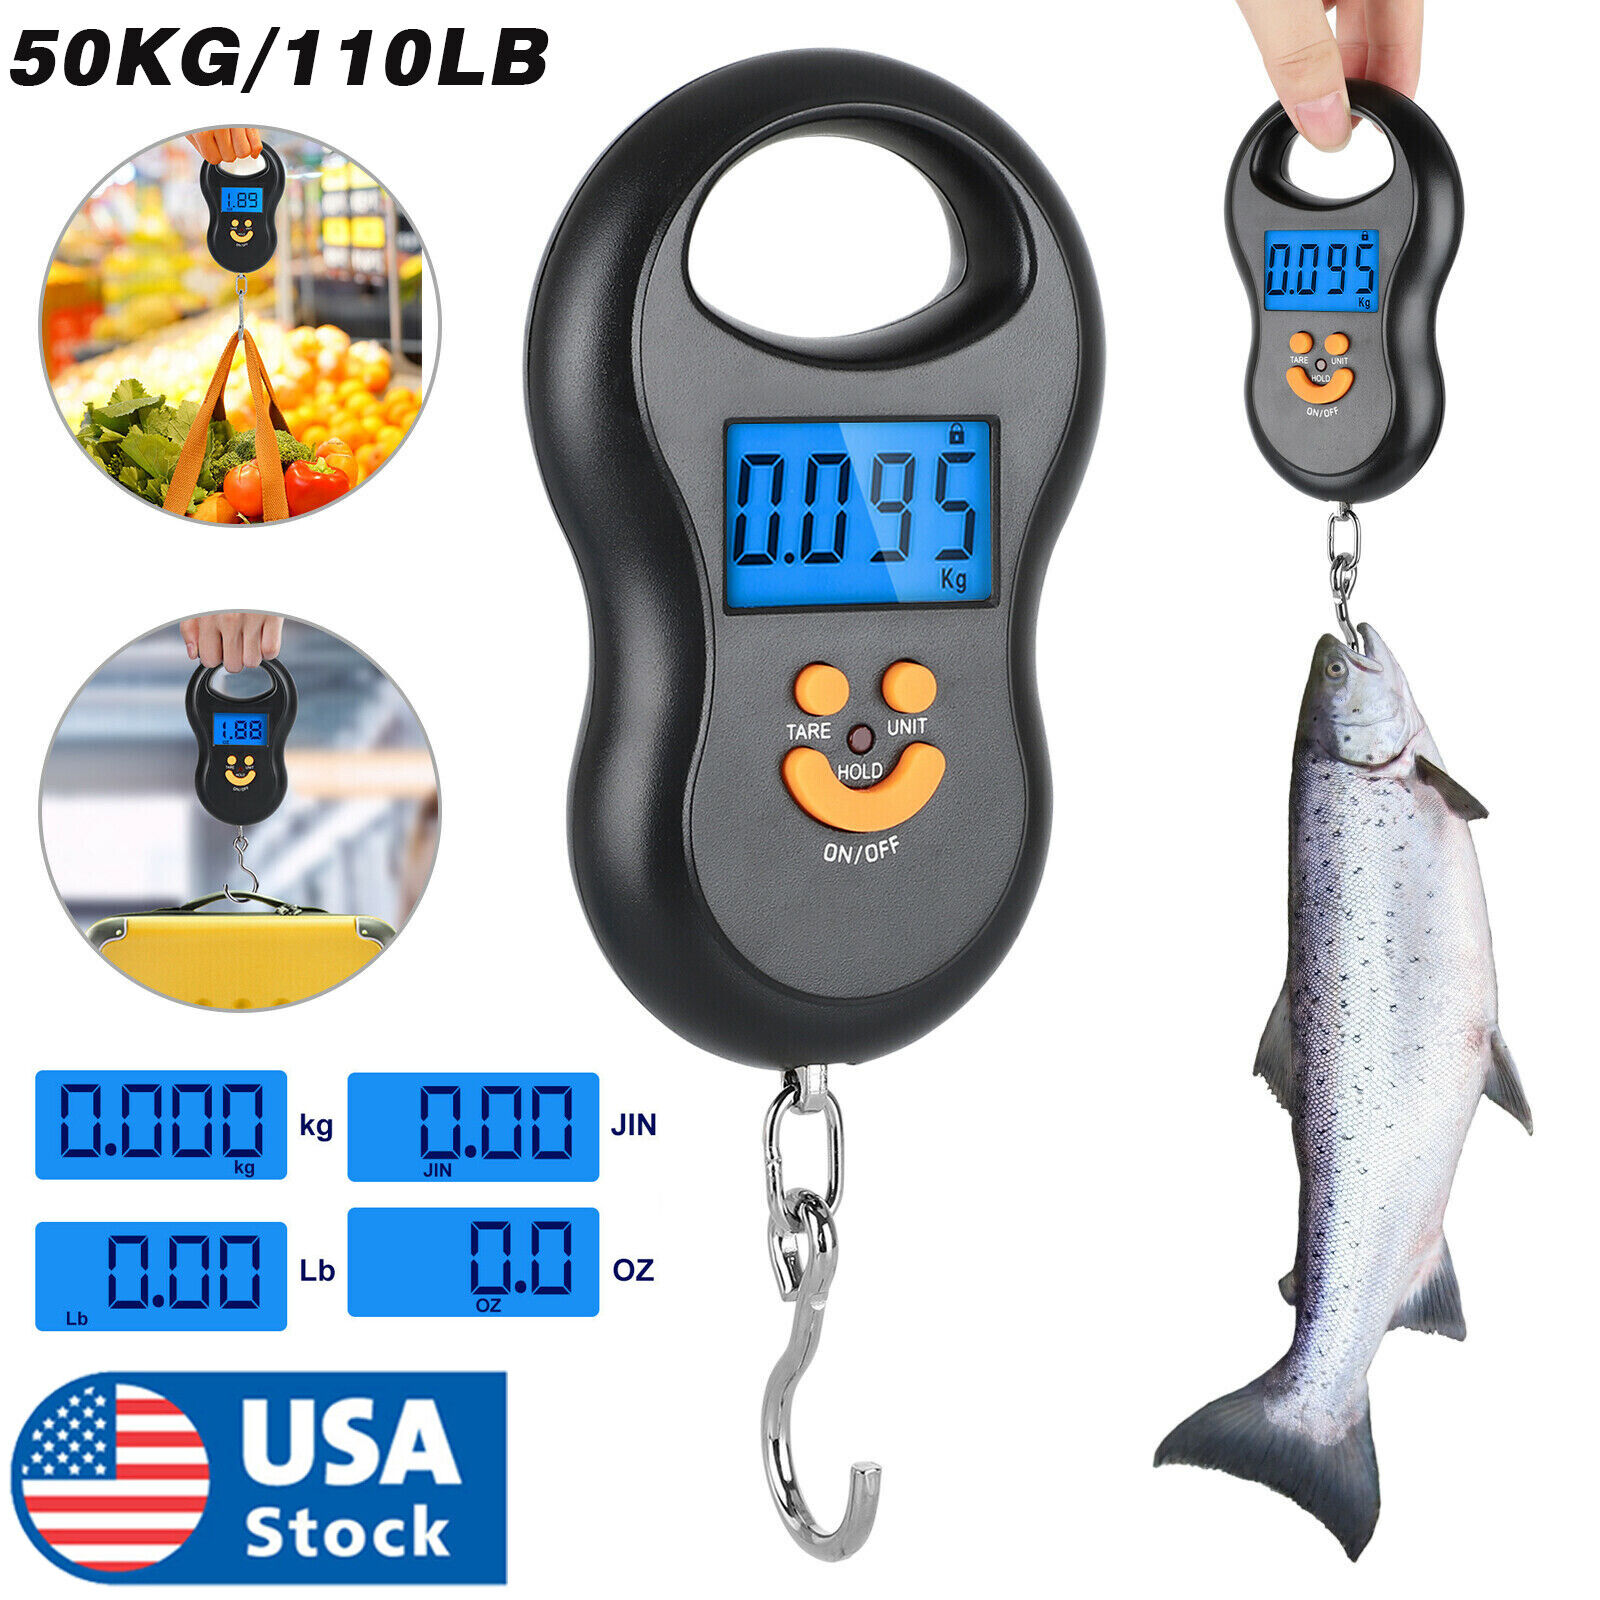 Digital Fish Scale Postal Hanging Hook Luggage Weight LCD Mini Portable 110 lb Home & Garden